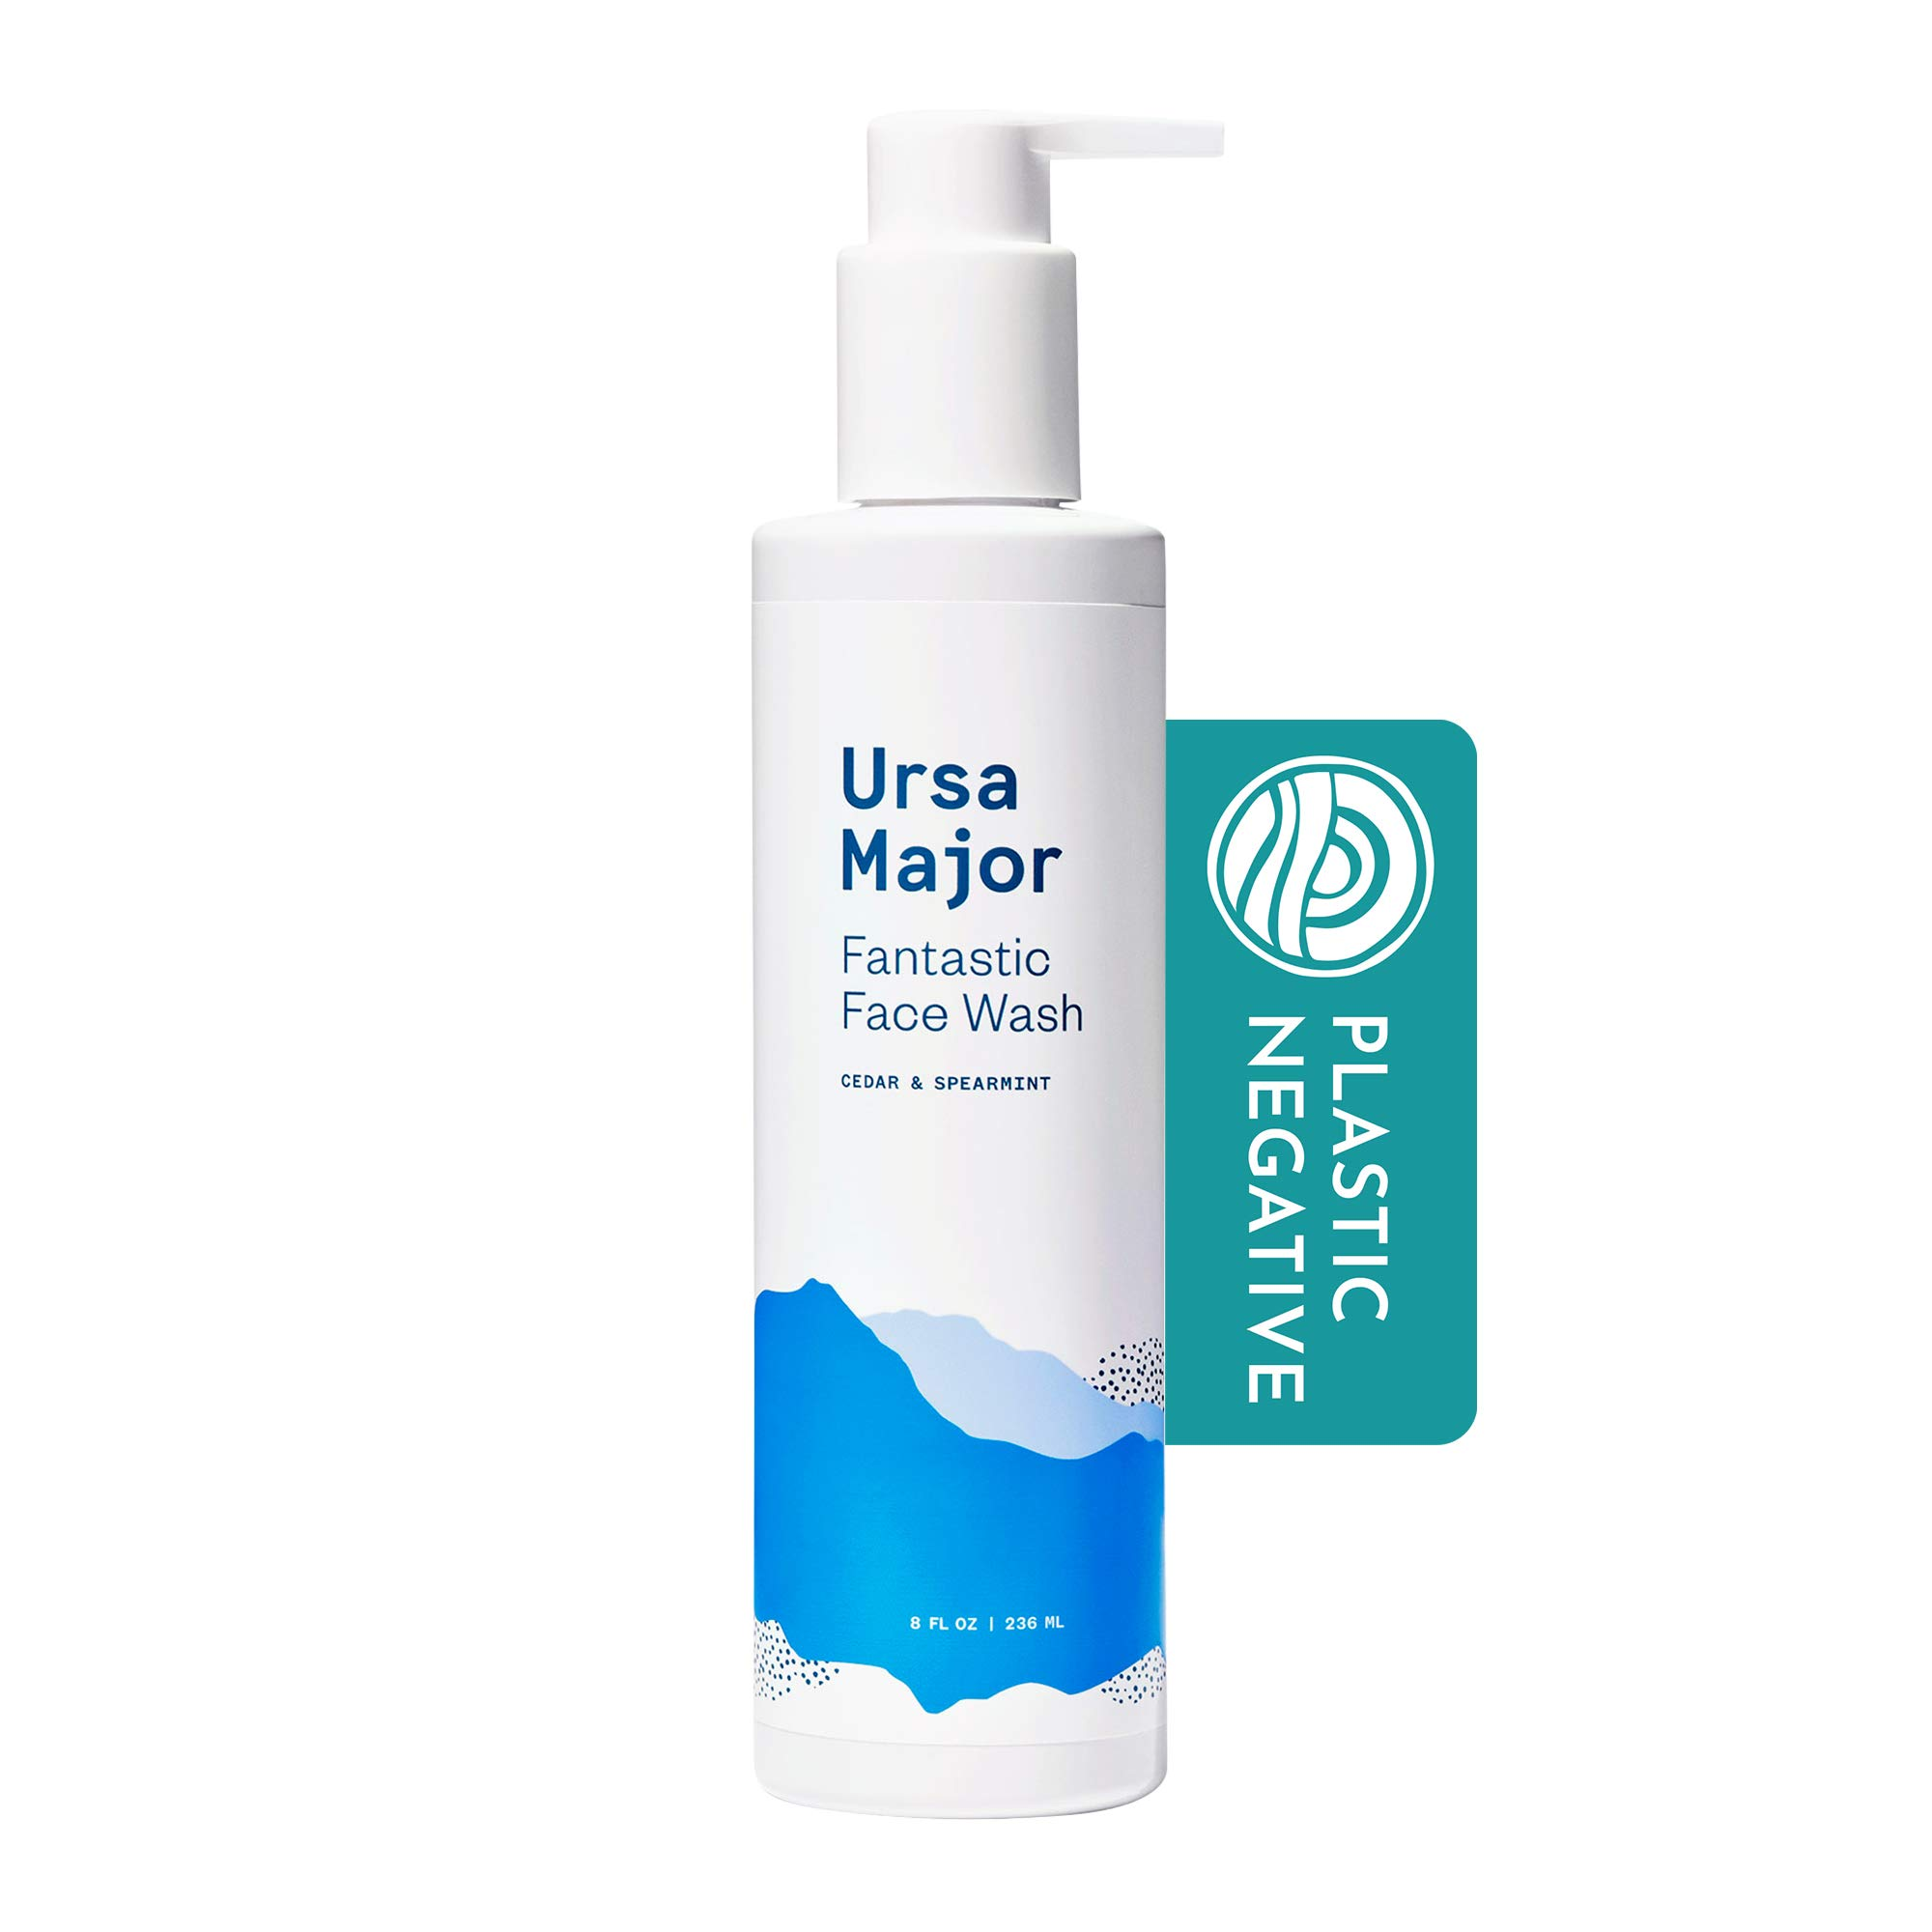 Ursa Major Fantastic Face Wash | Natural, Vegan & Cruelty Free | Daily Foaming Facial Cleanser for Men & Women | 8 ounces